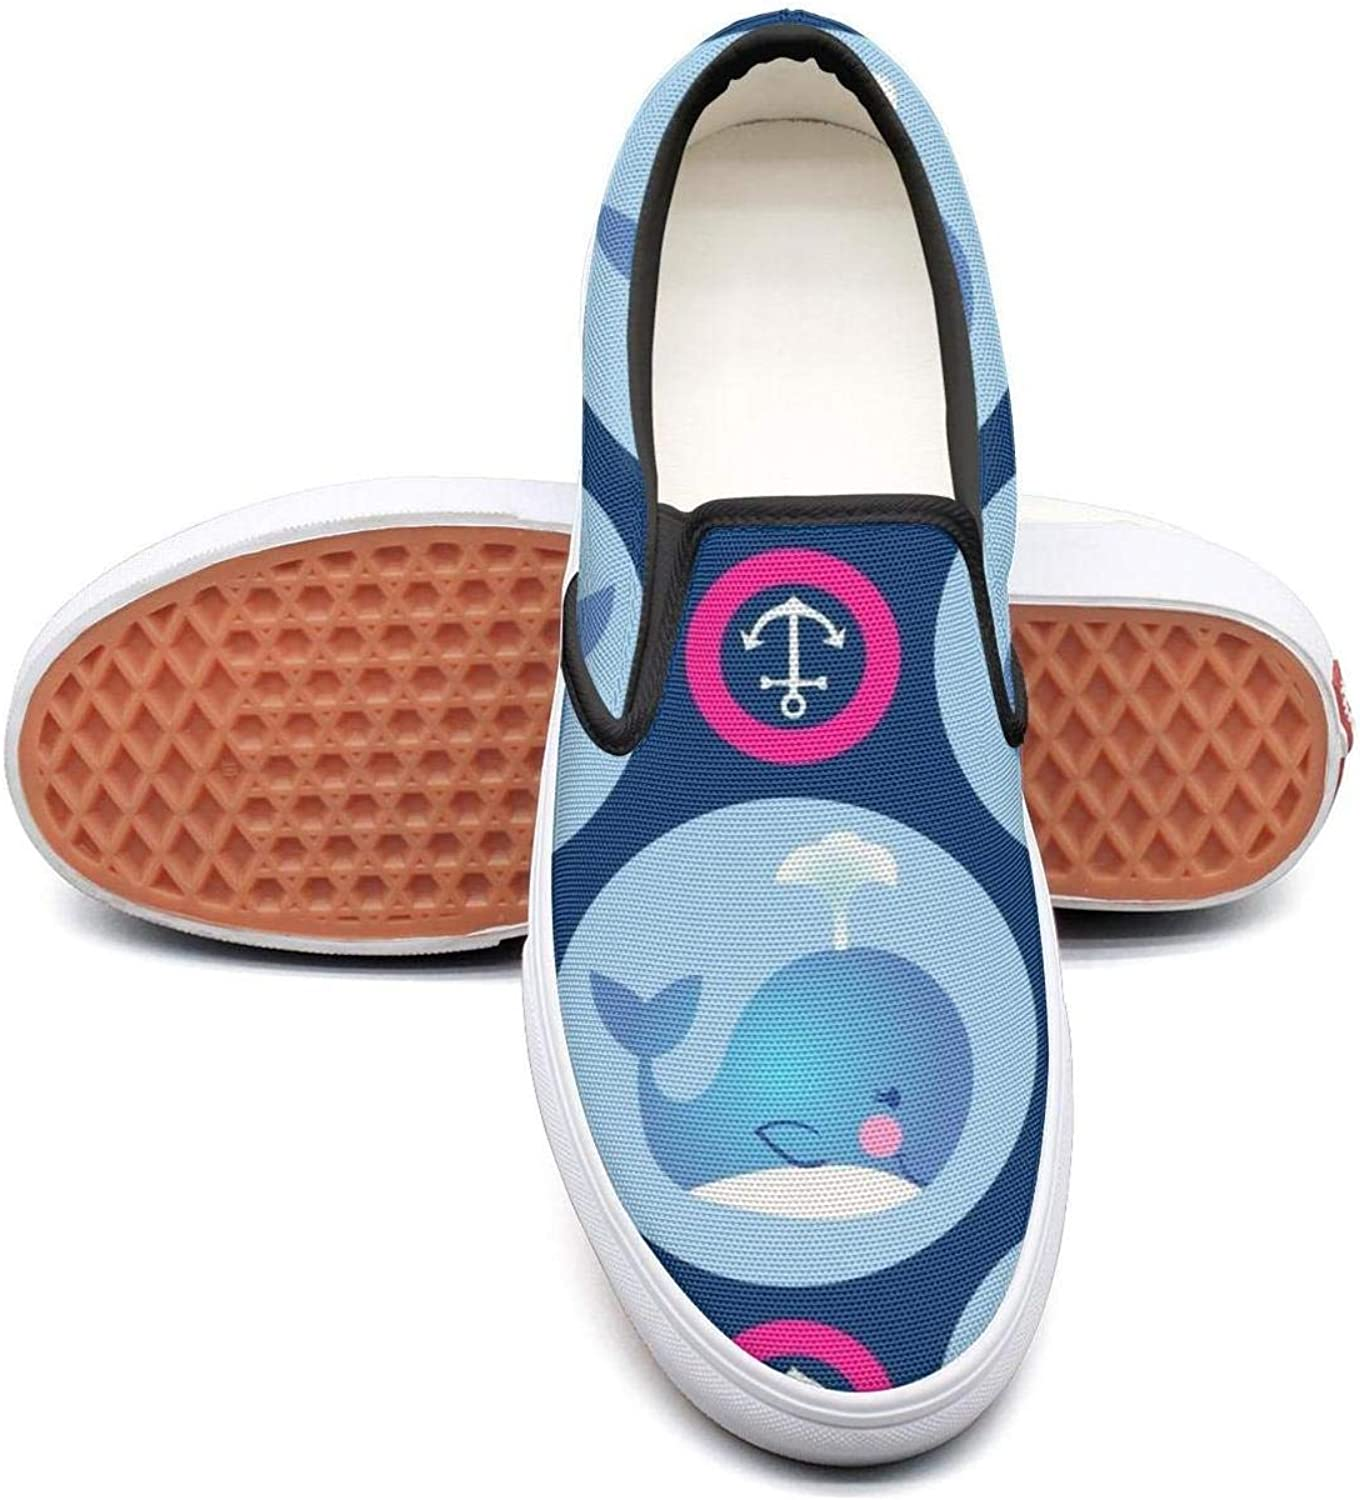 Refyds-es Cute Whales and Fuchsia Anchors Womens Fashion Slip on Low Top Lightweight Canvas Cloth shoes